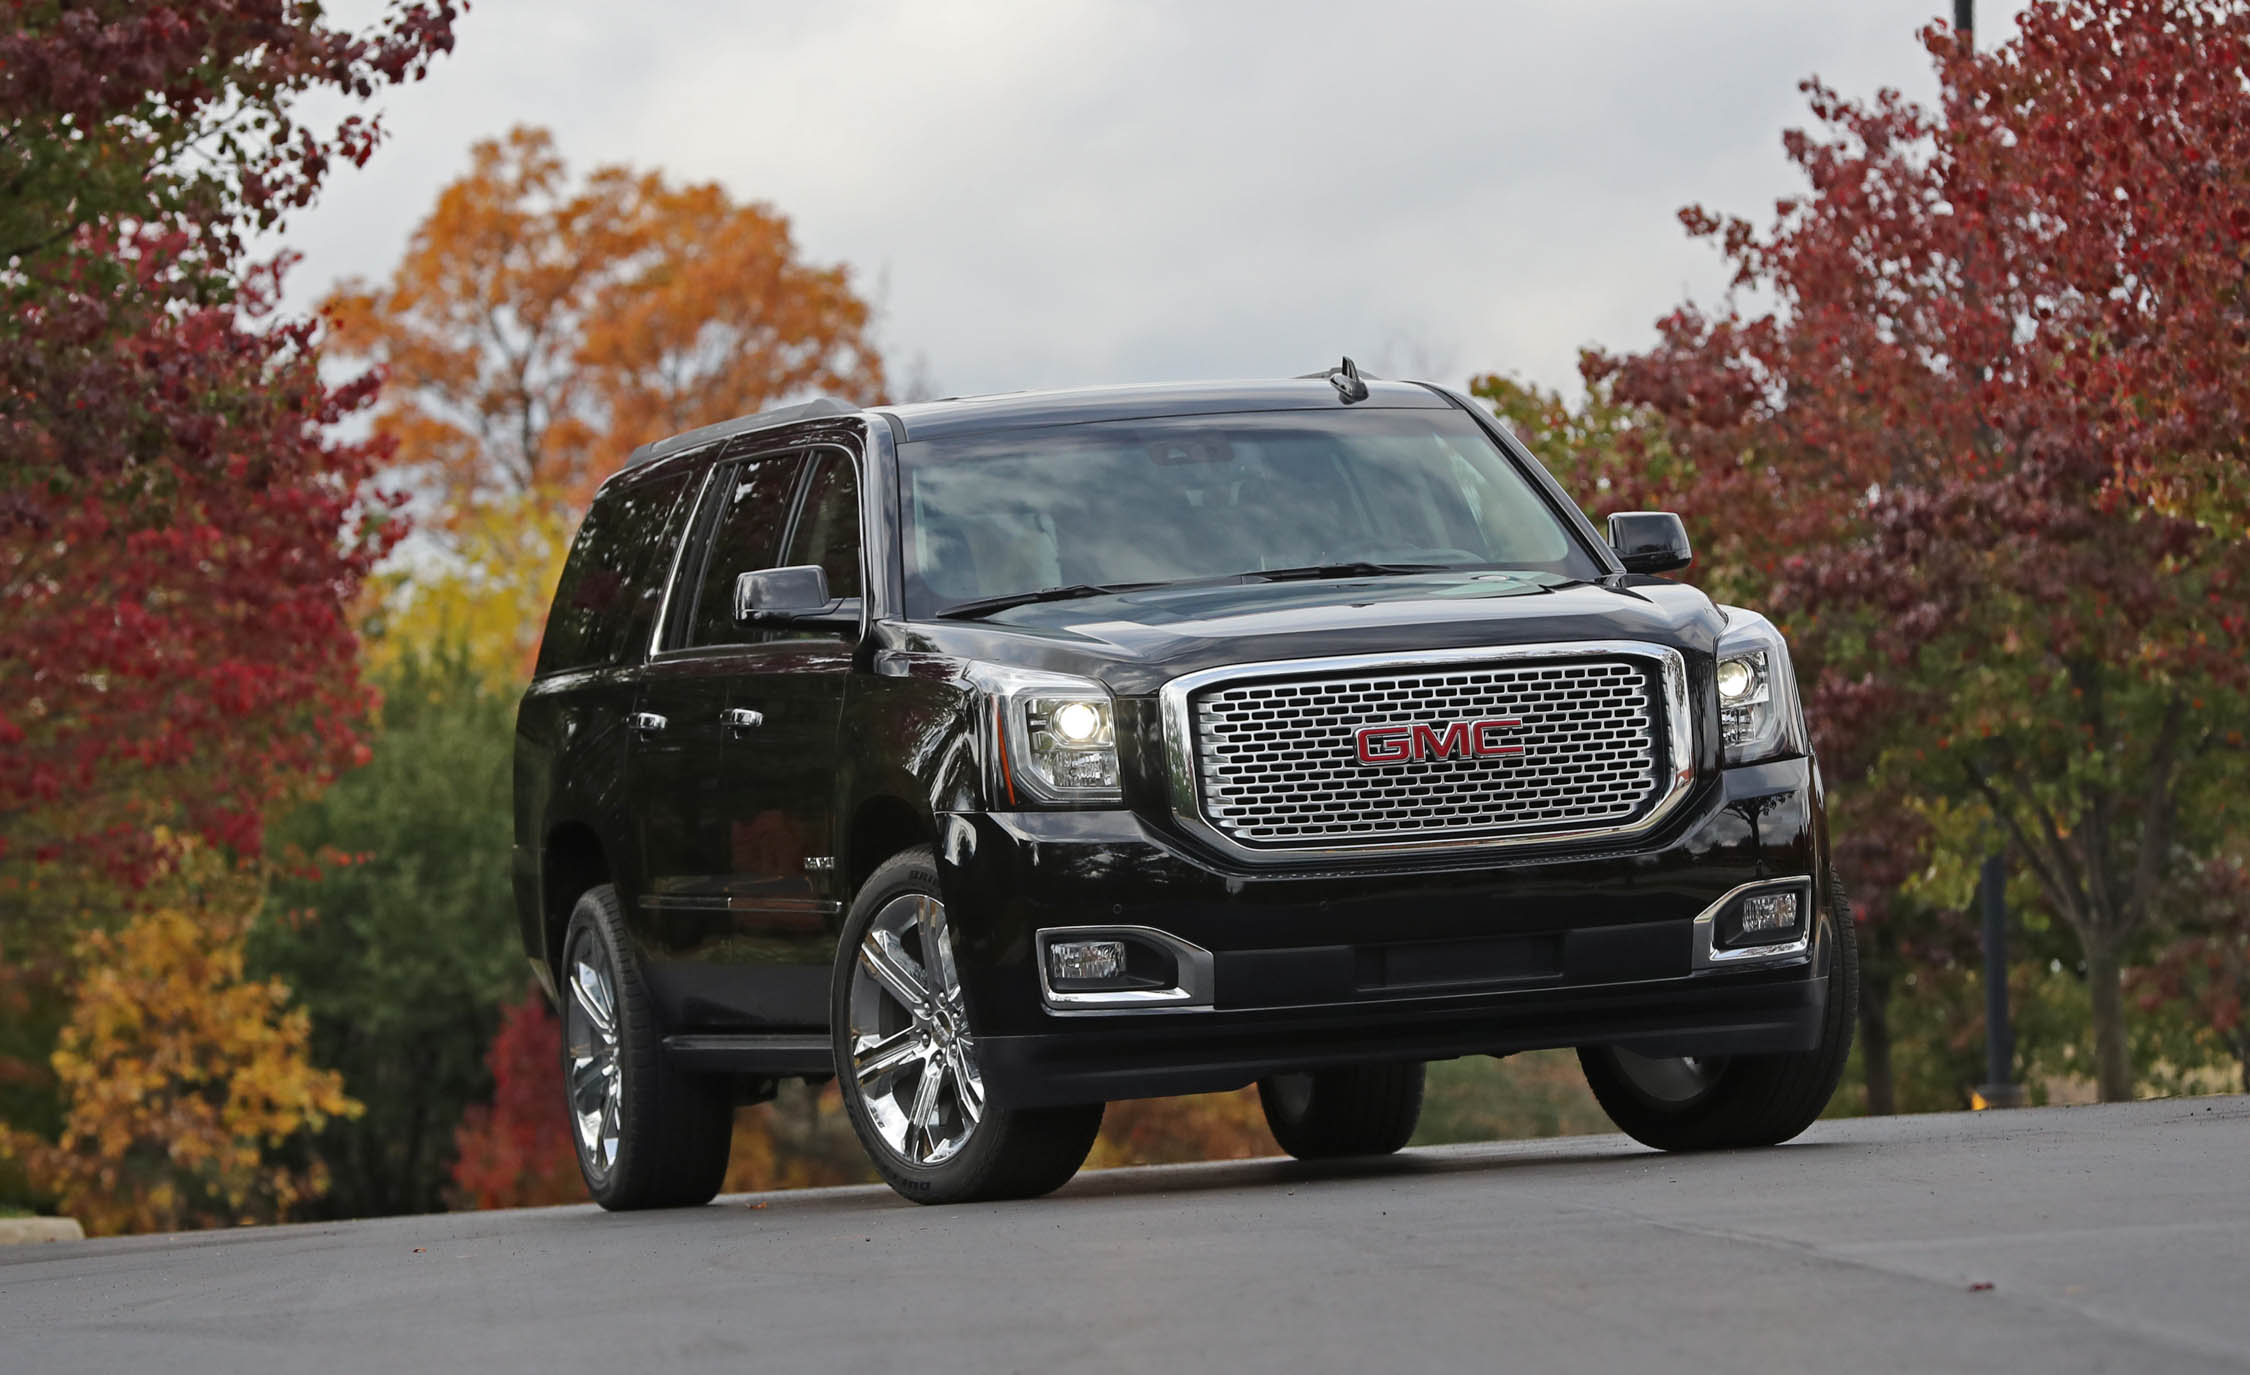 2017 Gmc Yukon Xl Denali Black (Photo 1 of 26)